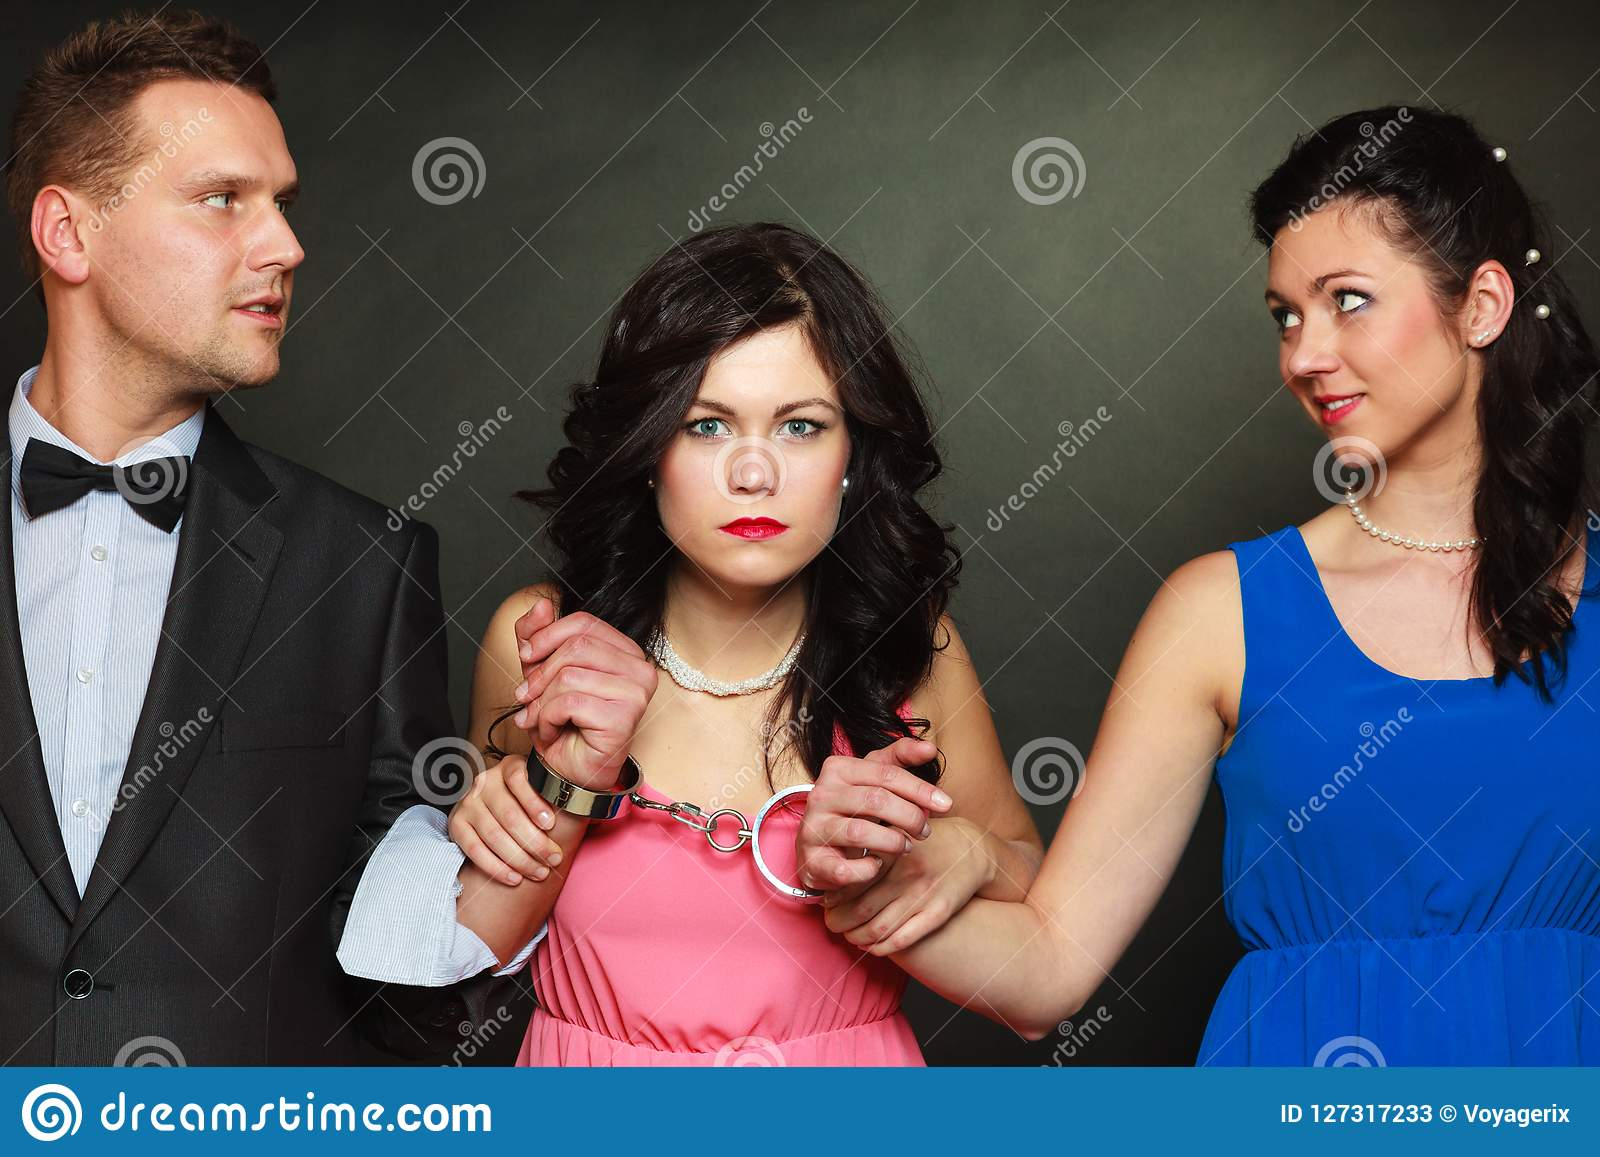 Wife and husband in handcuffs woman standing behind